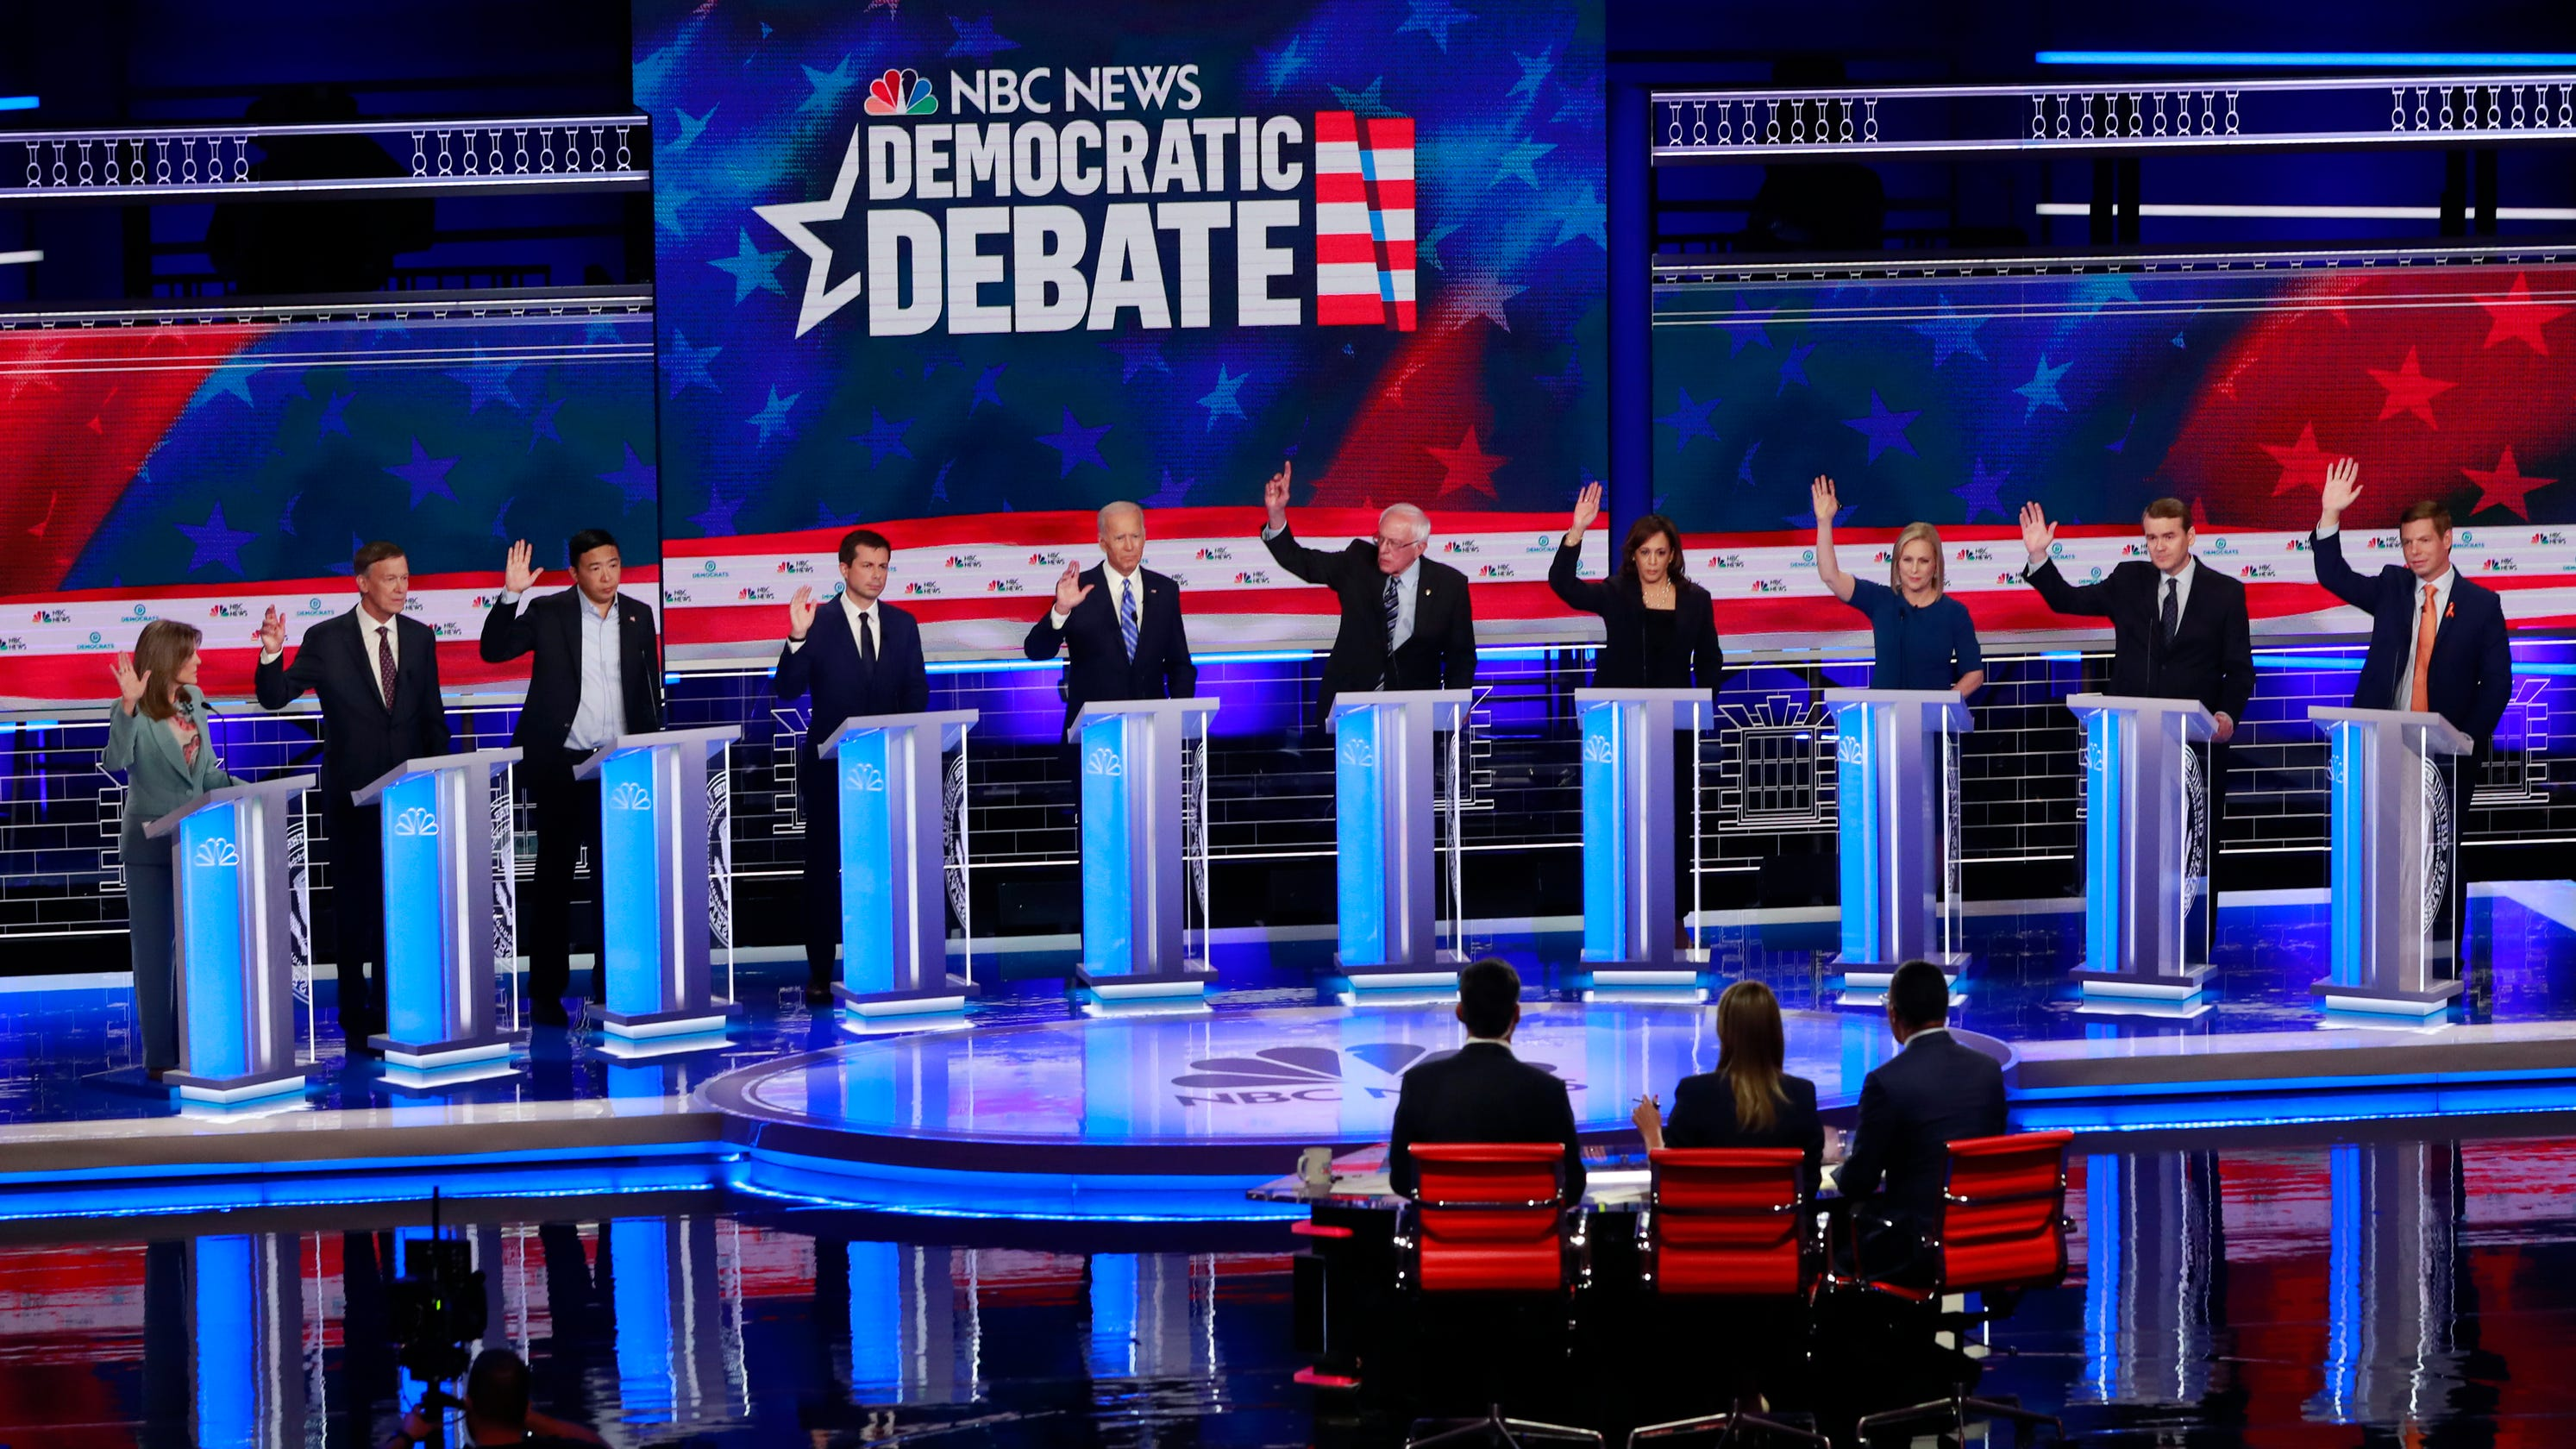 Best Of Lawrence 2020 Race issues inevitable at Democratic debates but will Trump be target?